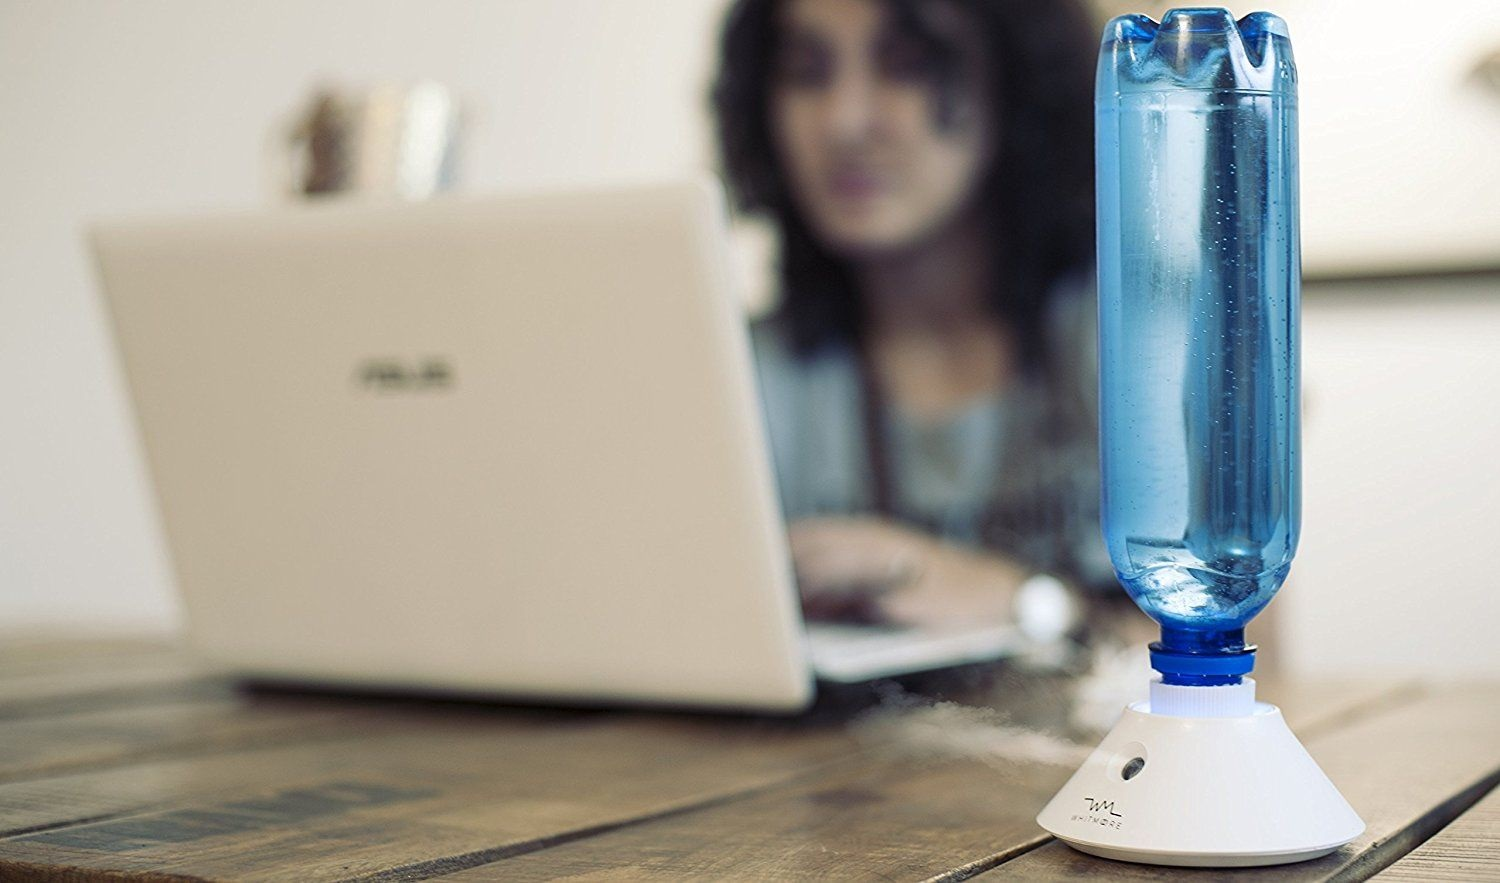 How to Use a Humidifier for Allergy Relief?